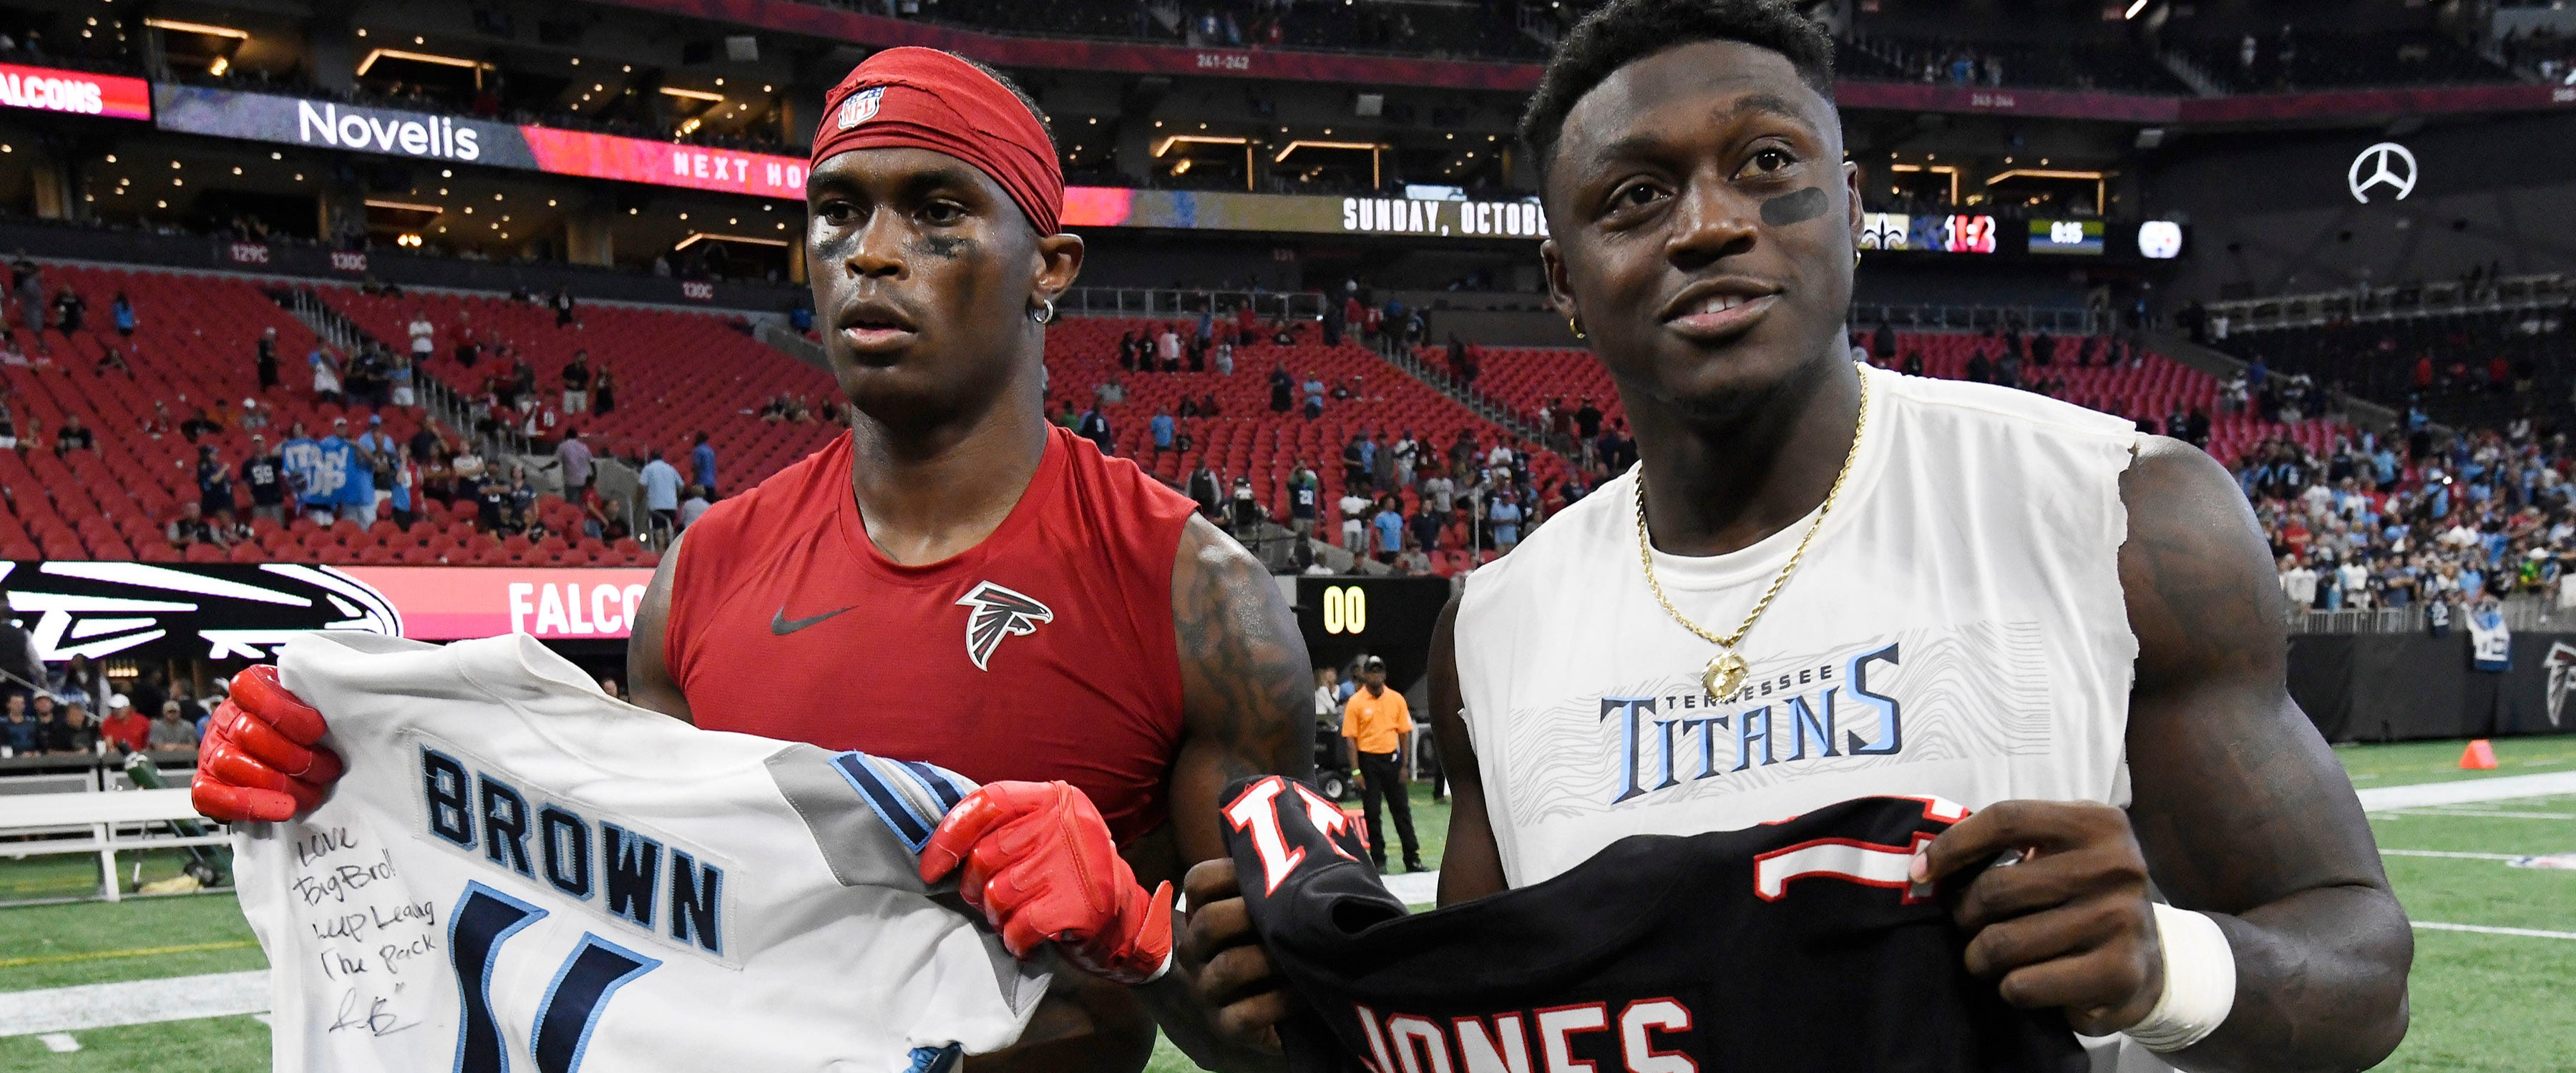 What are the betting odds the Titans acquire Julio Jones?